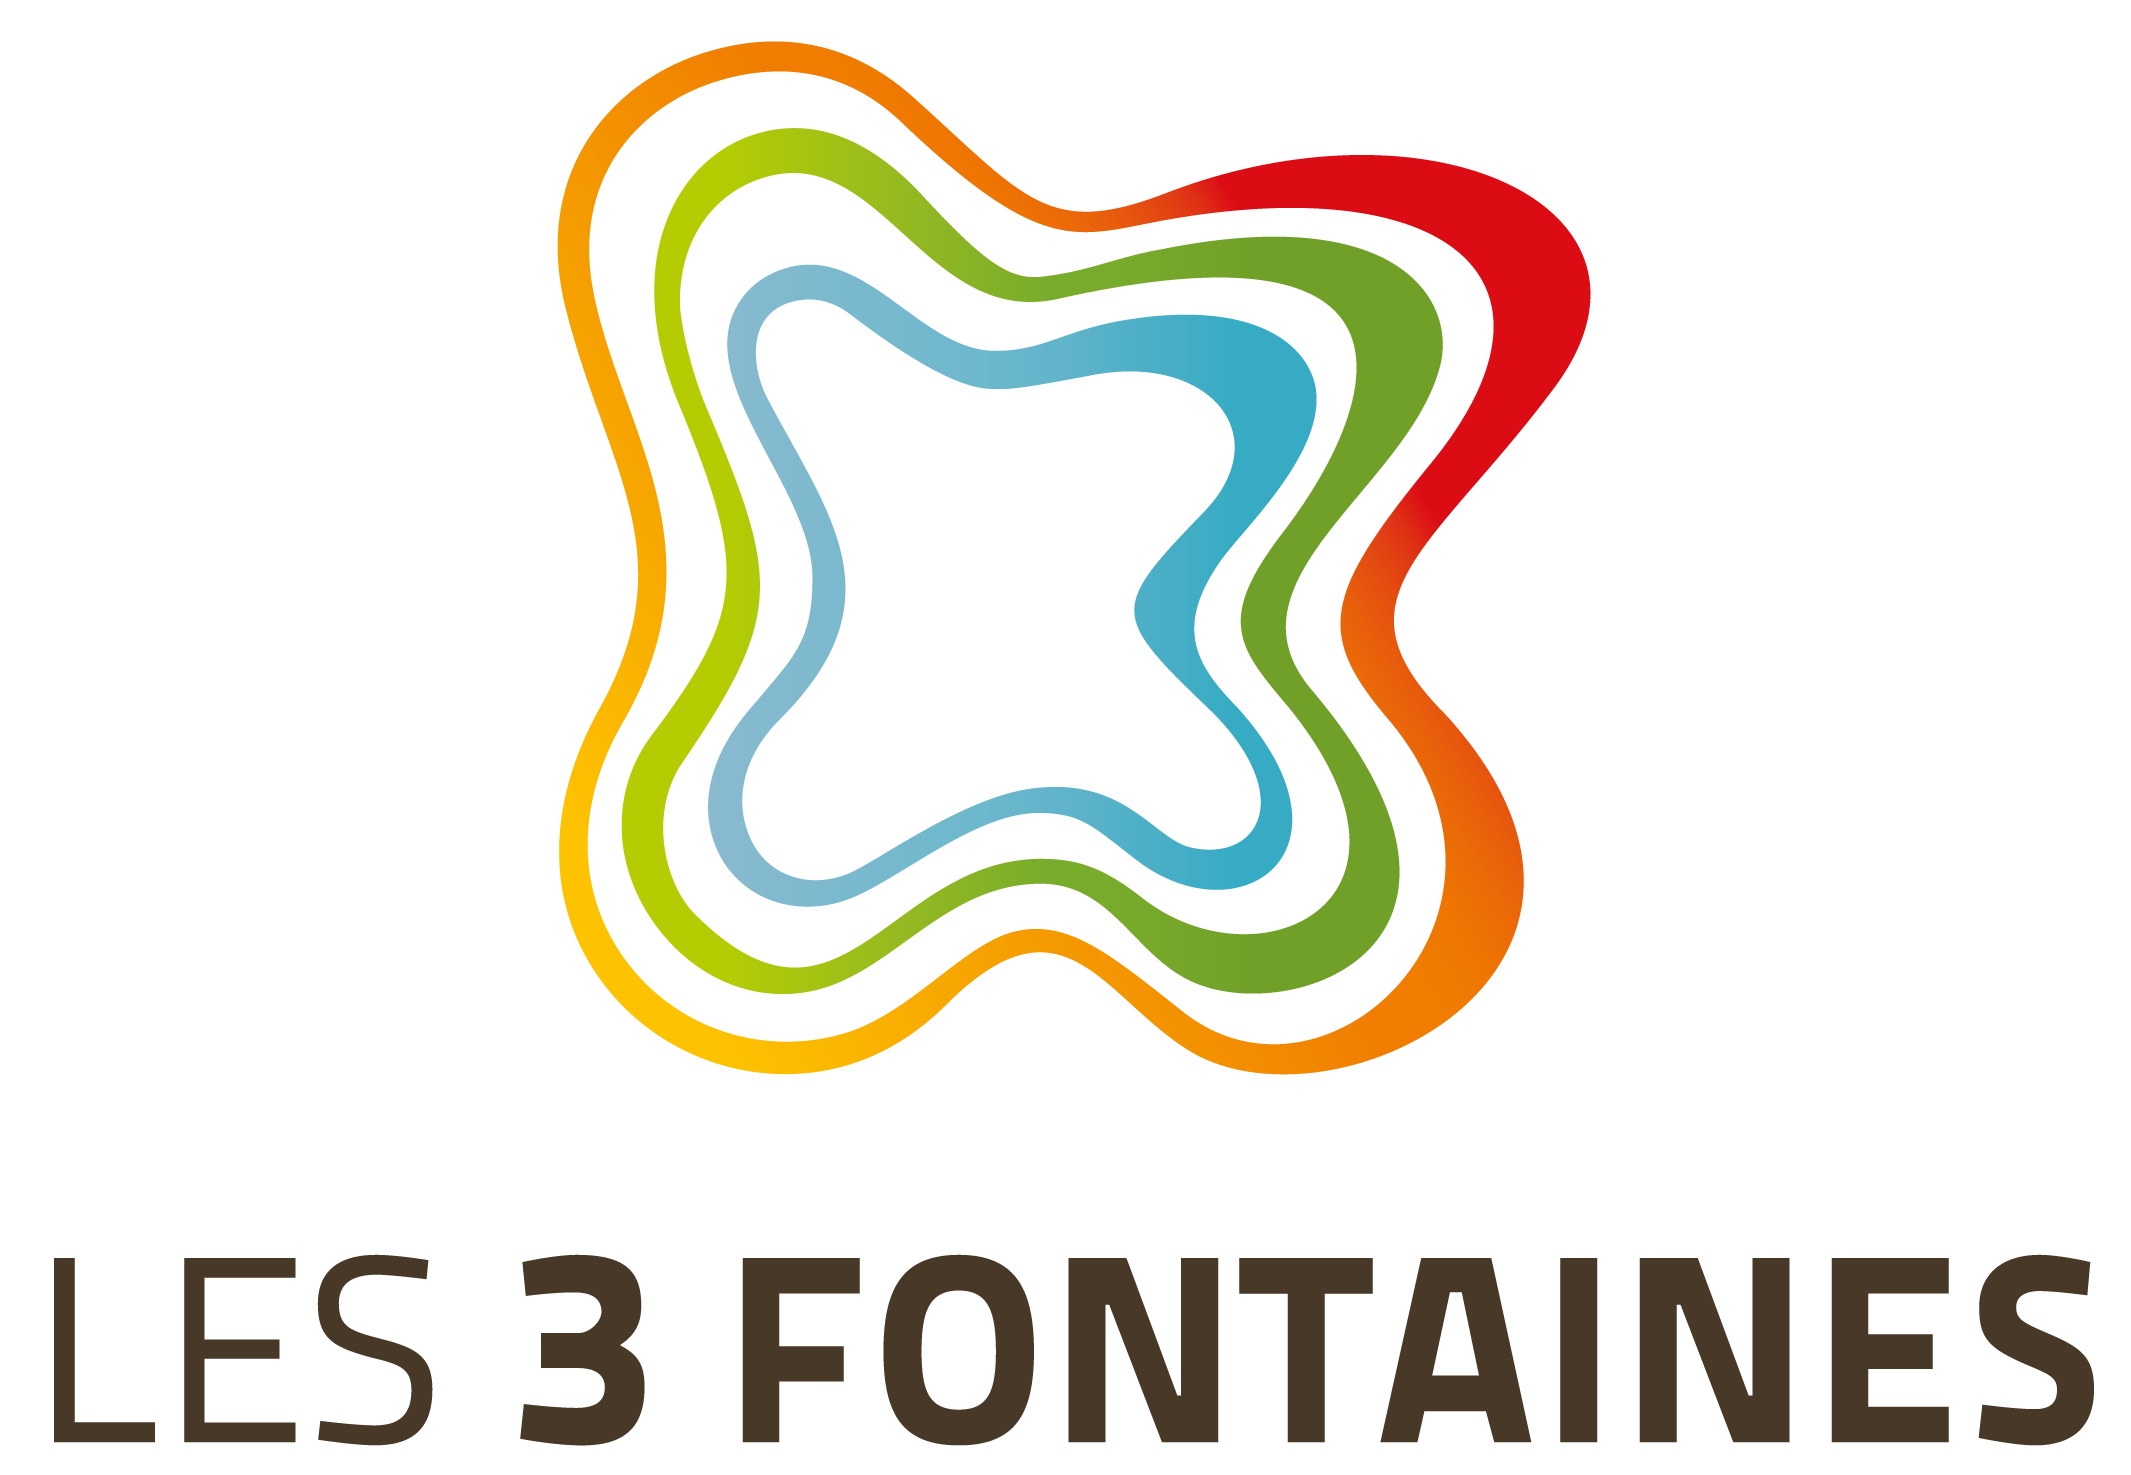 Les Cergy 3 Fontaines